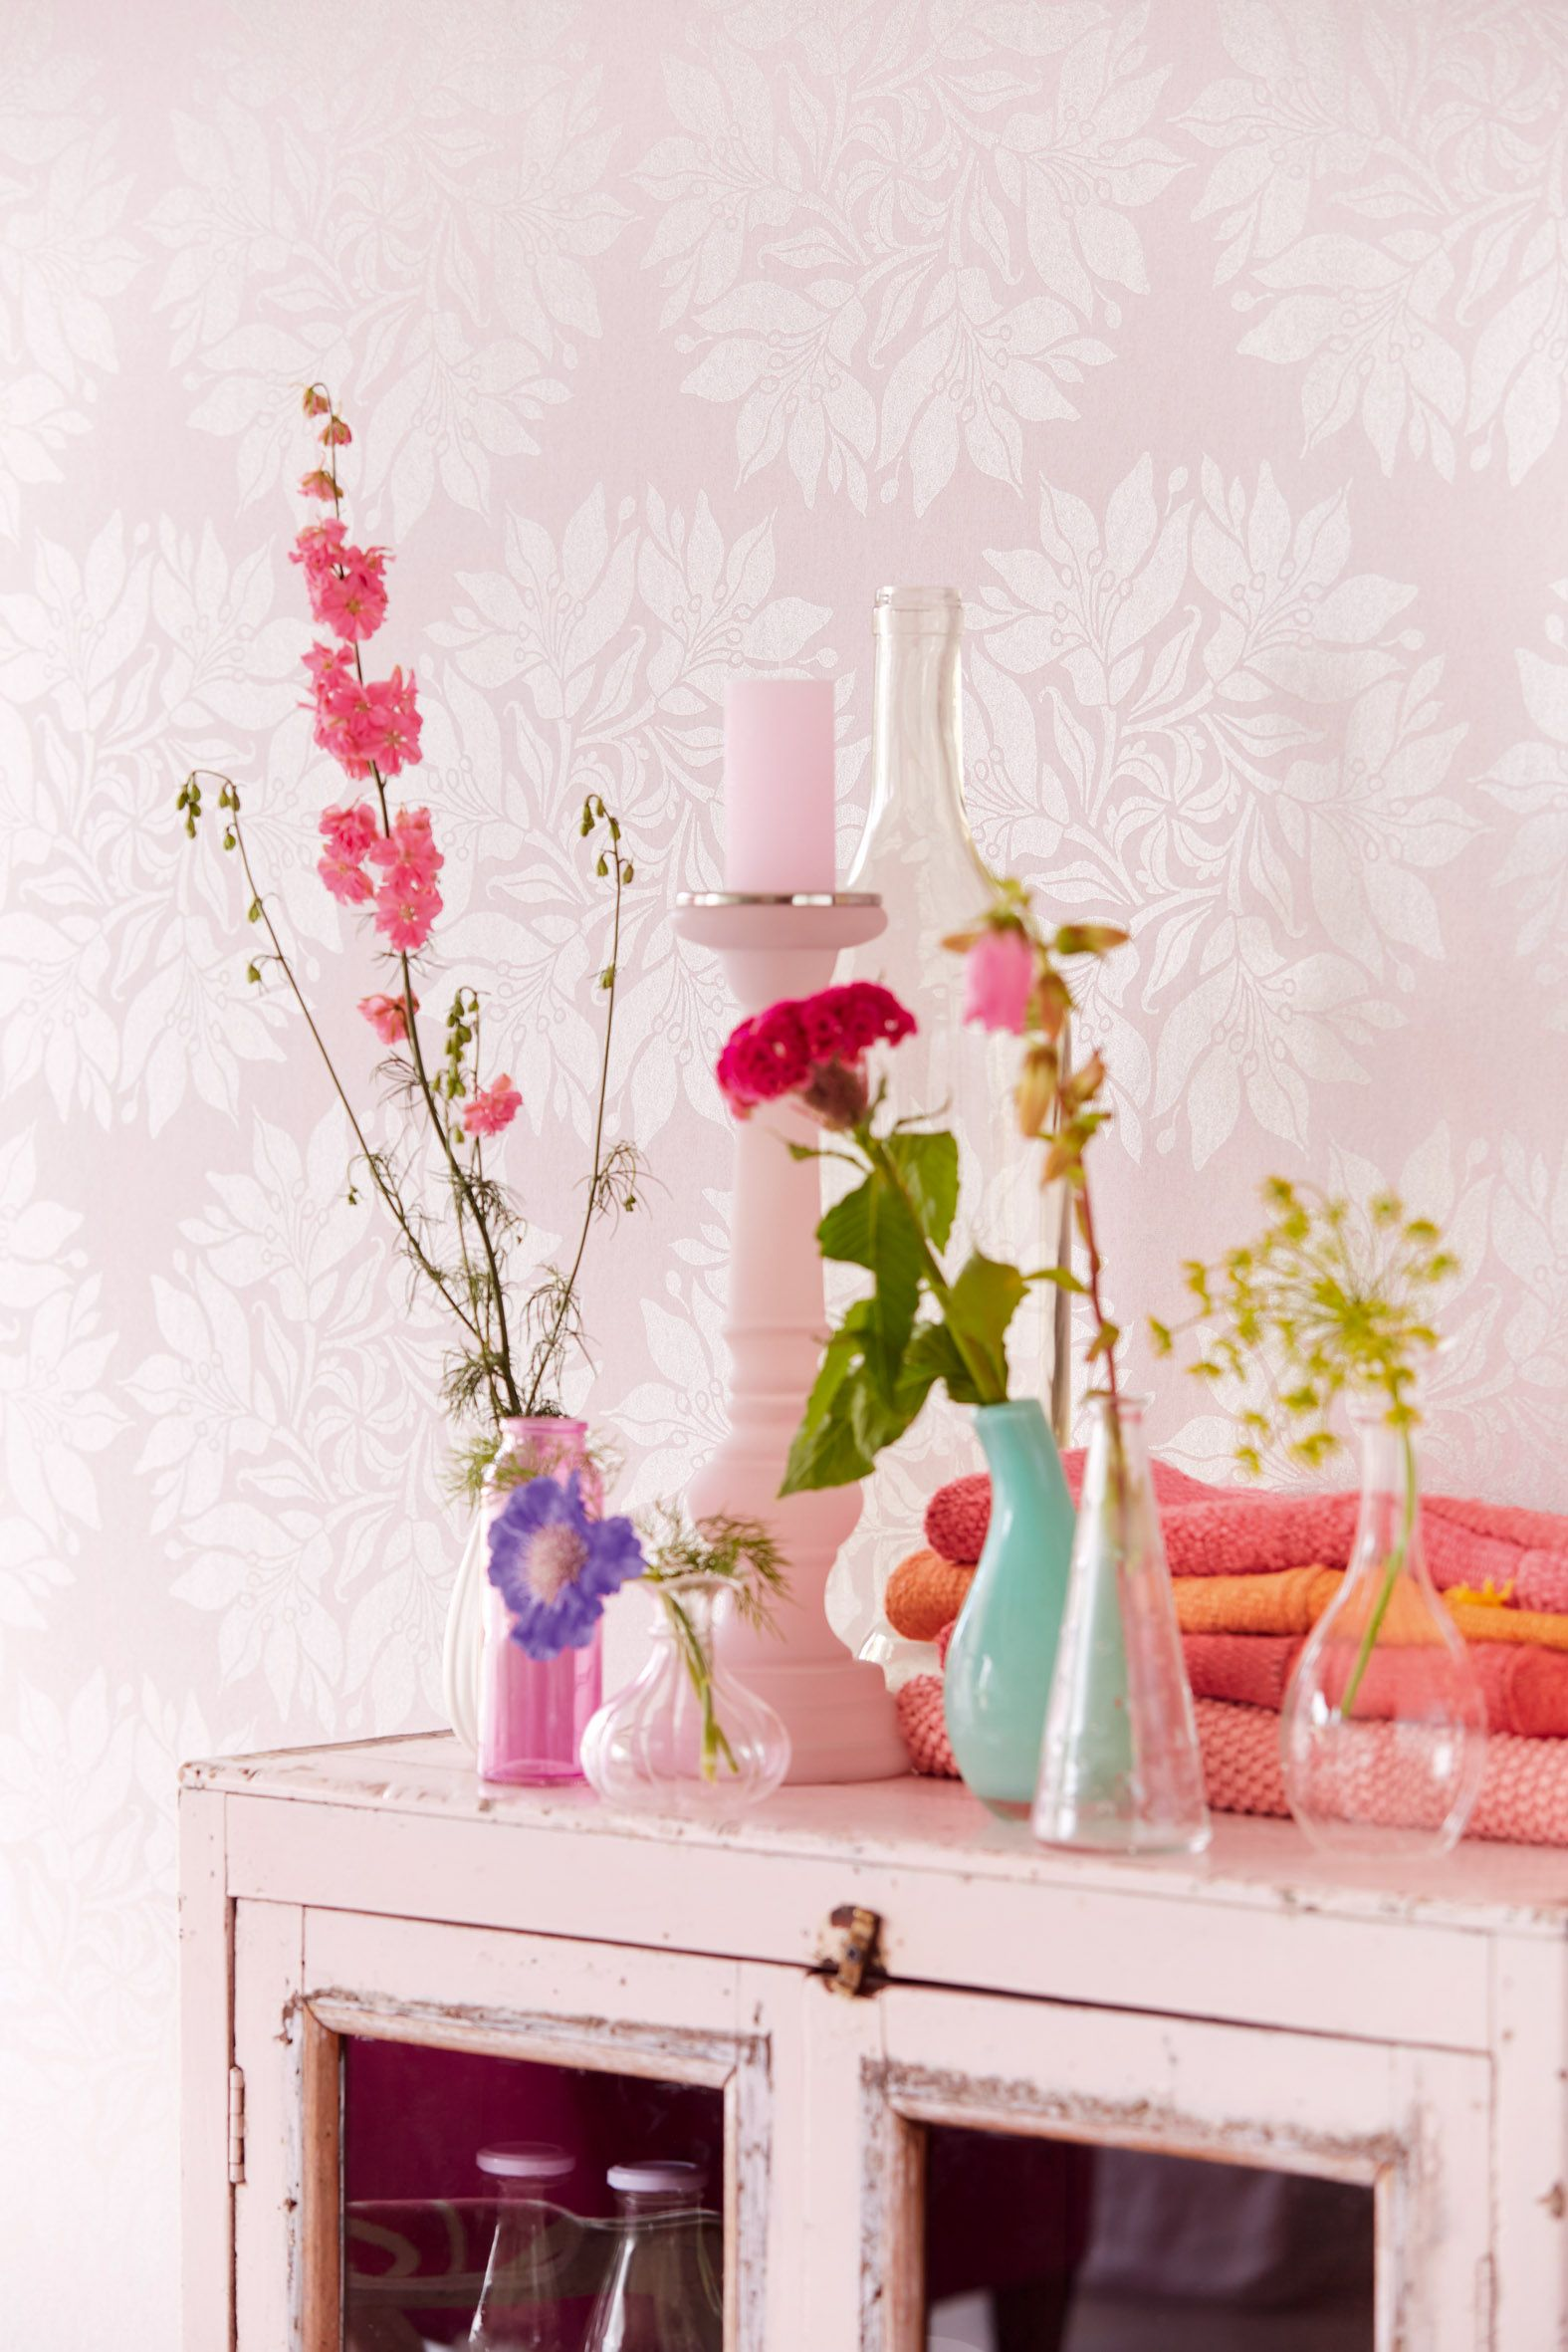 Best Soft Pink Wallpaper Perfect For A Bedroom Modern Floral 640 x 480